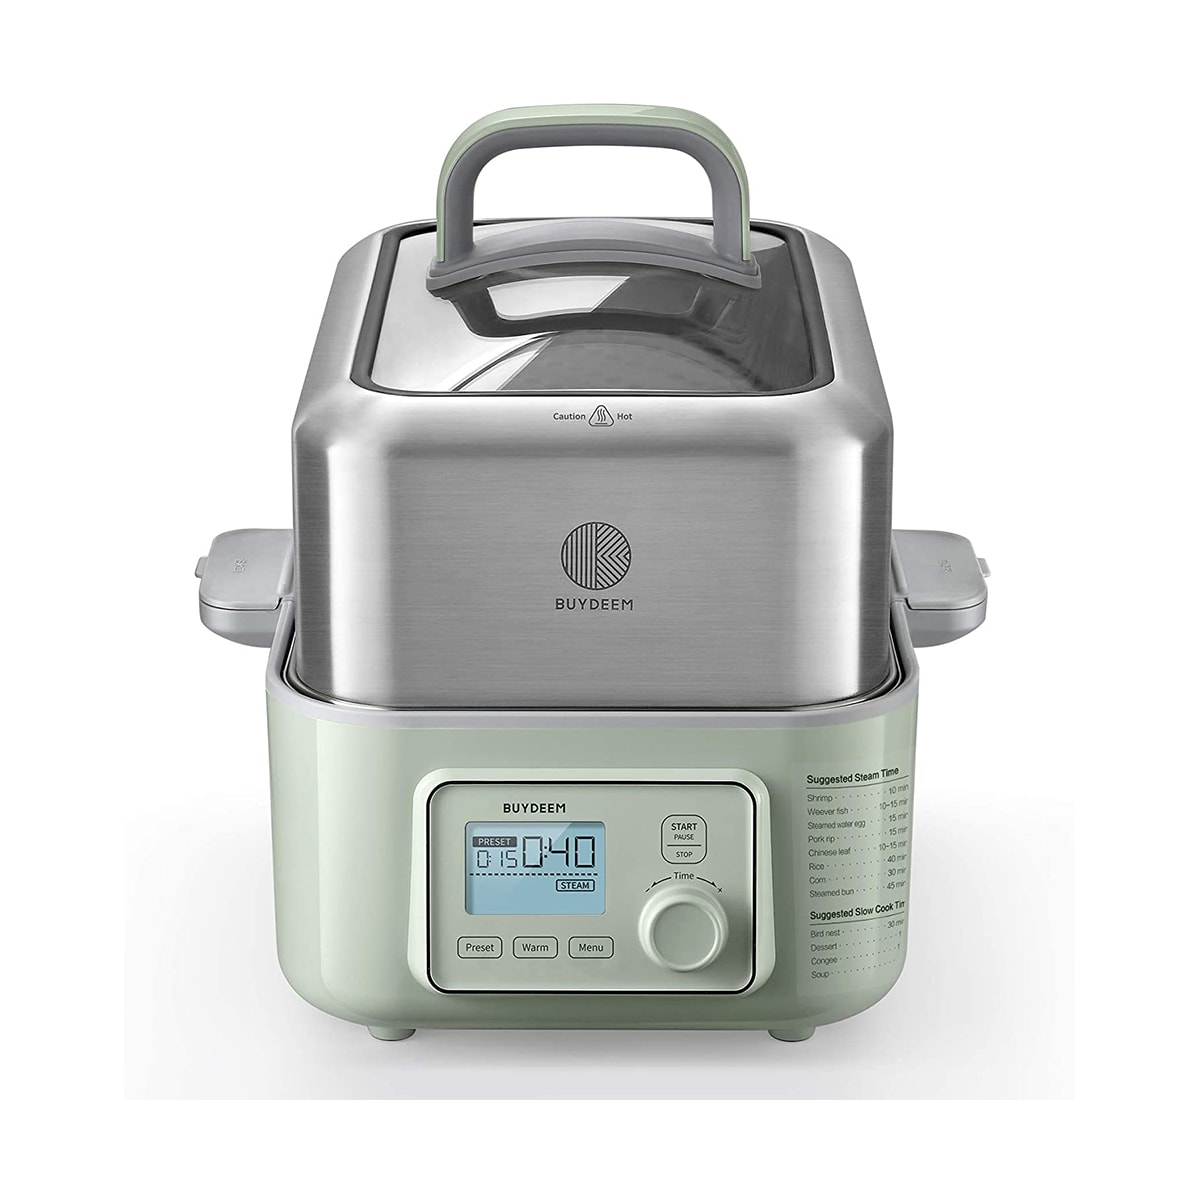 Yamibuy.com:Customer reviews:5-Quart Electric Food Steamer, One Touch Vegetable Steamer, Digital Multifunctional Steamer, Quick Steam in 60s, G563